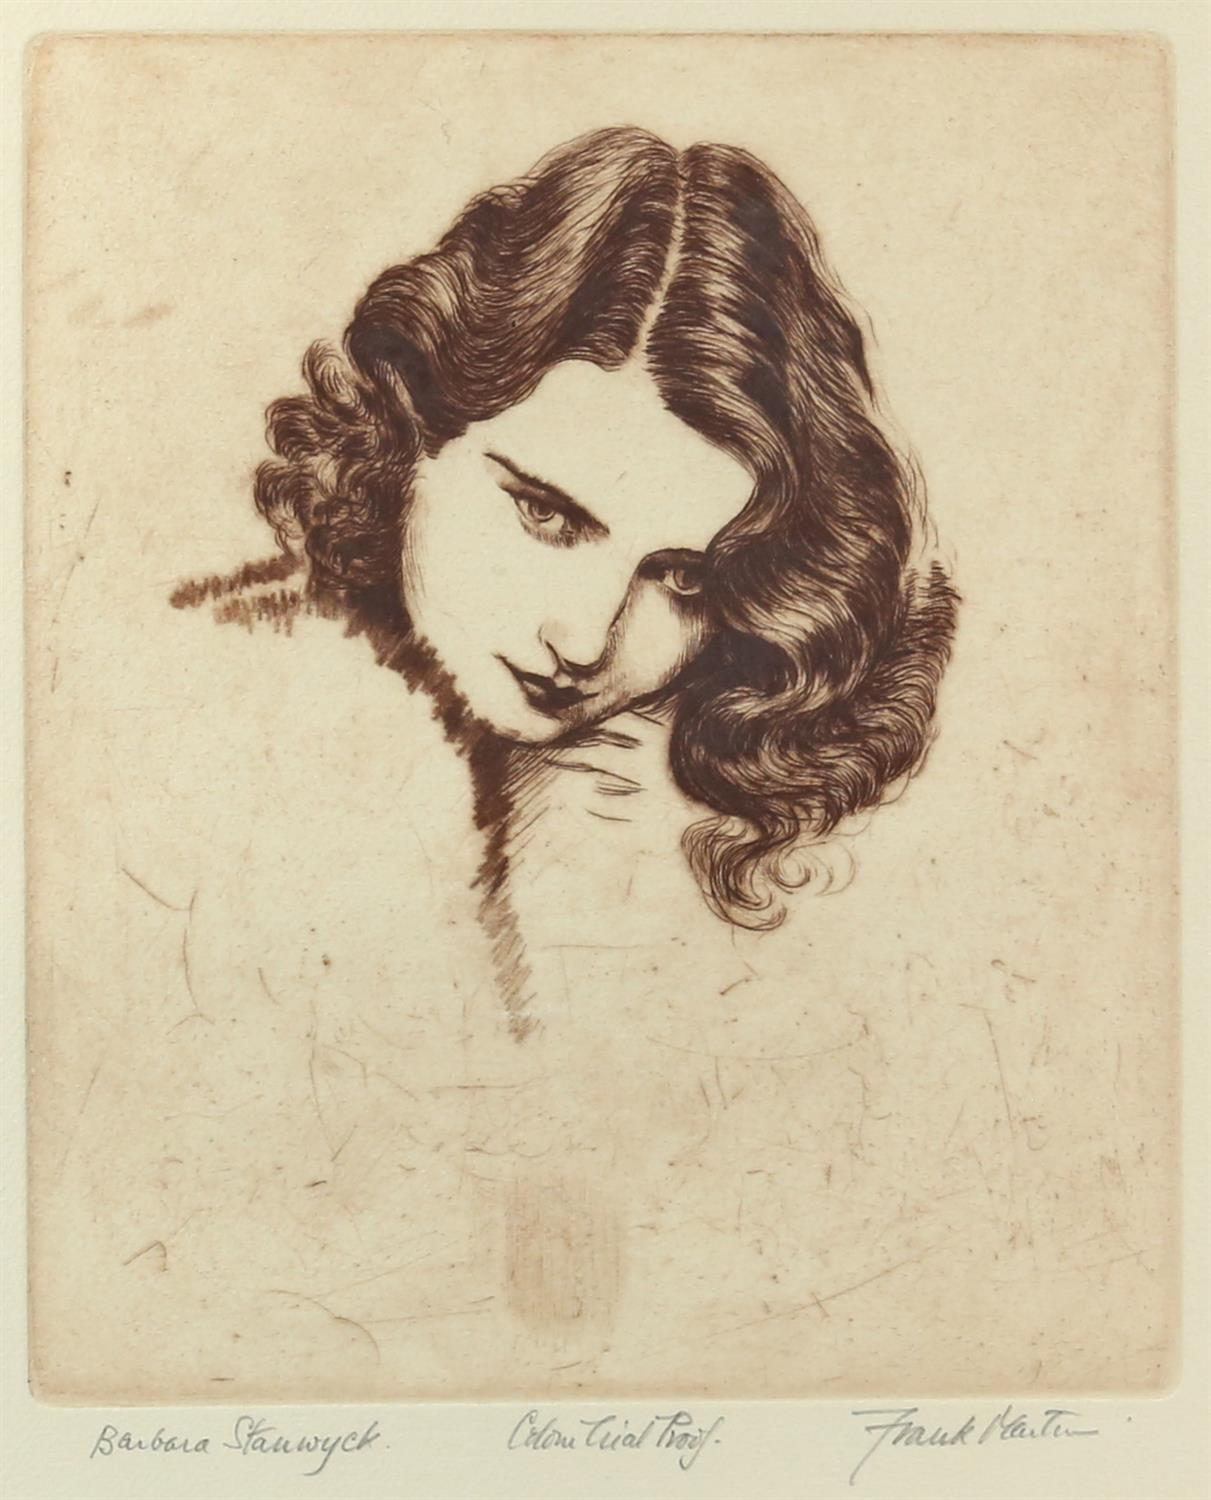 Frank Martin, British 1921-2005, 'Barbara Stanwyck', colour trial proof, signed in the margin,